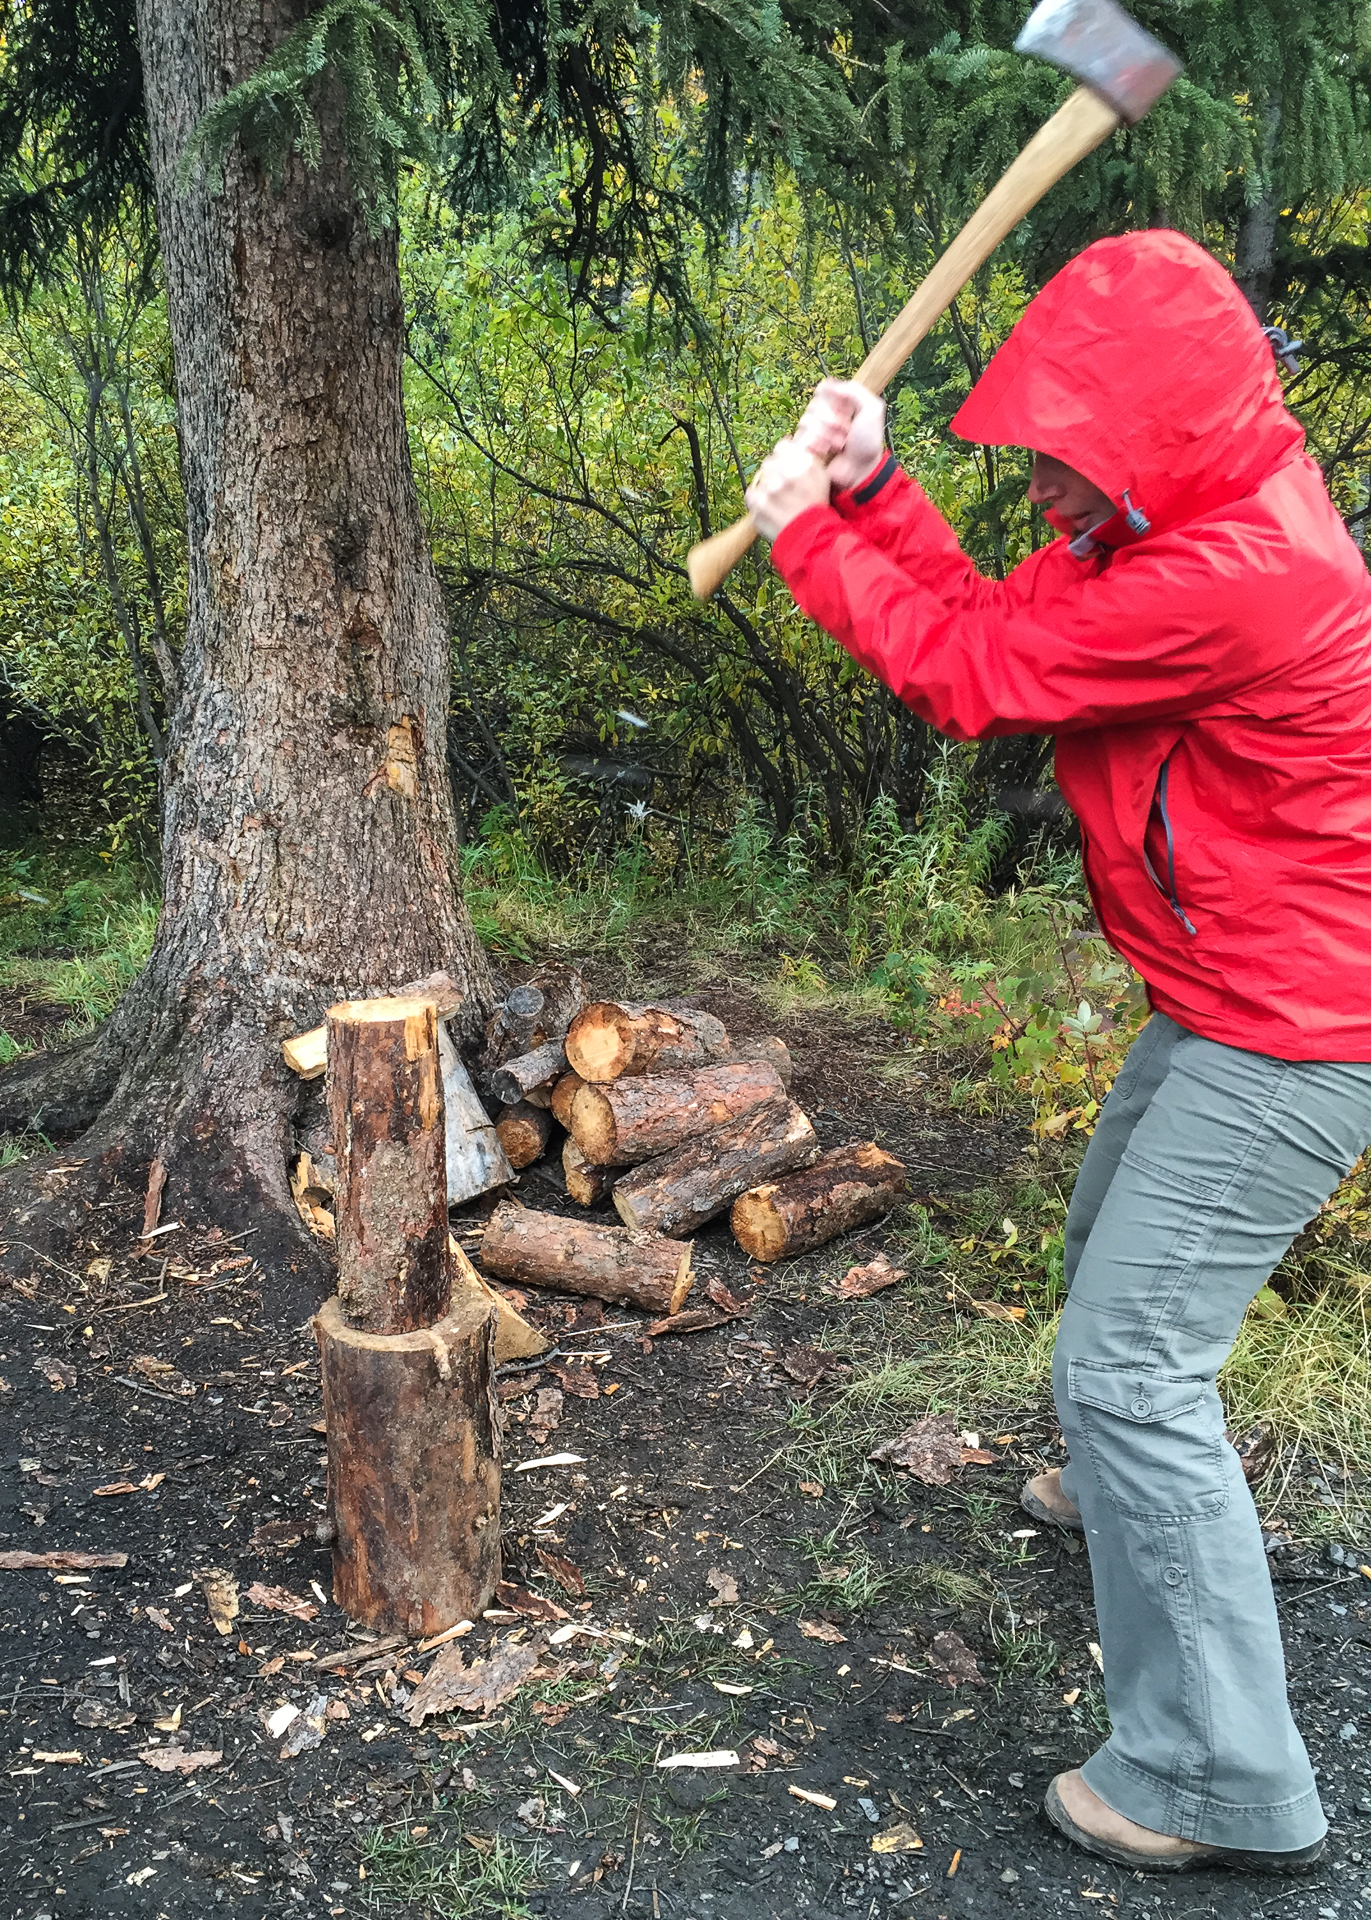 Justine getting our firewood prepared for the evening's fire.